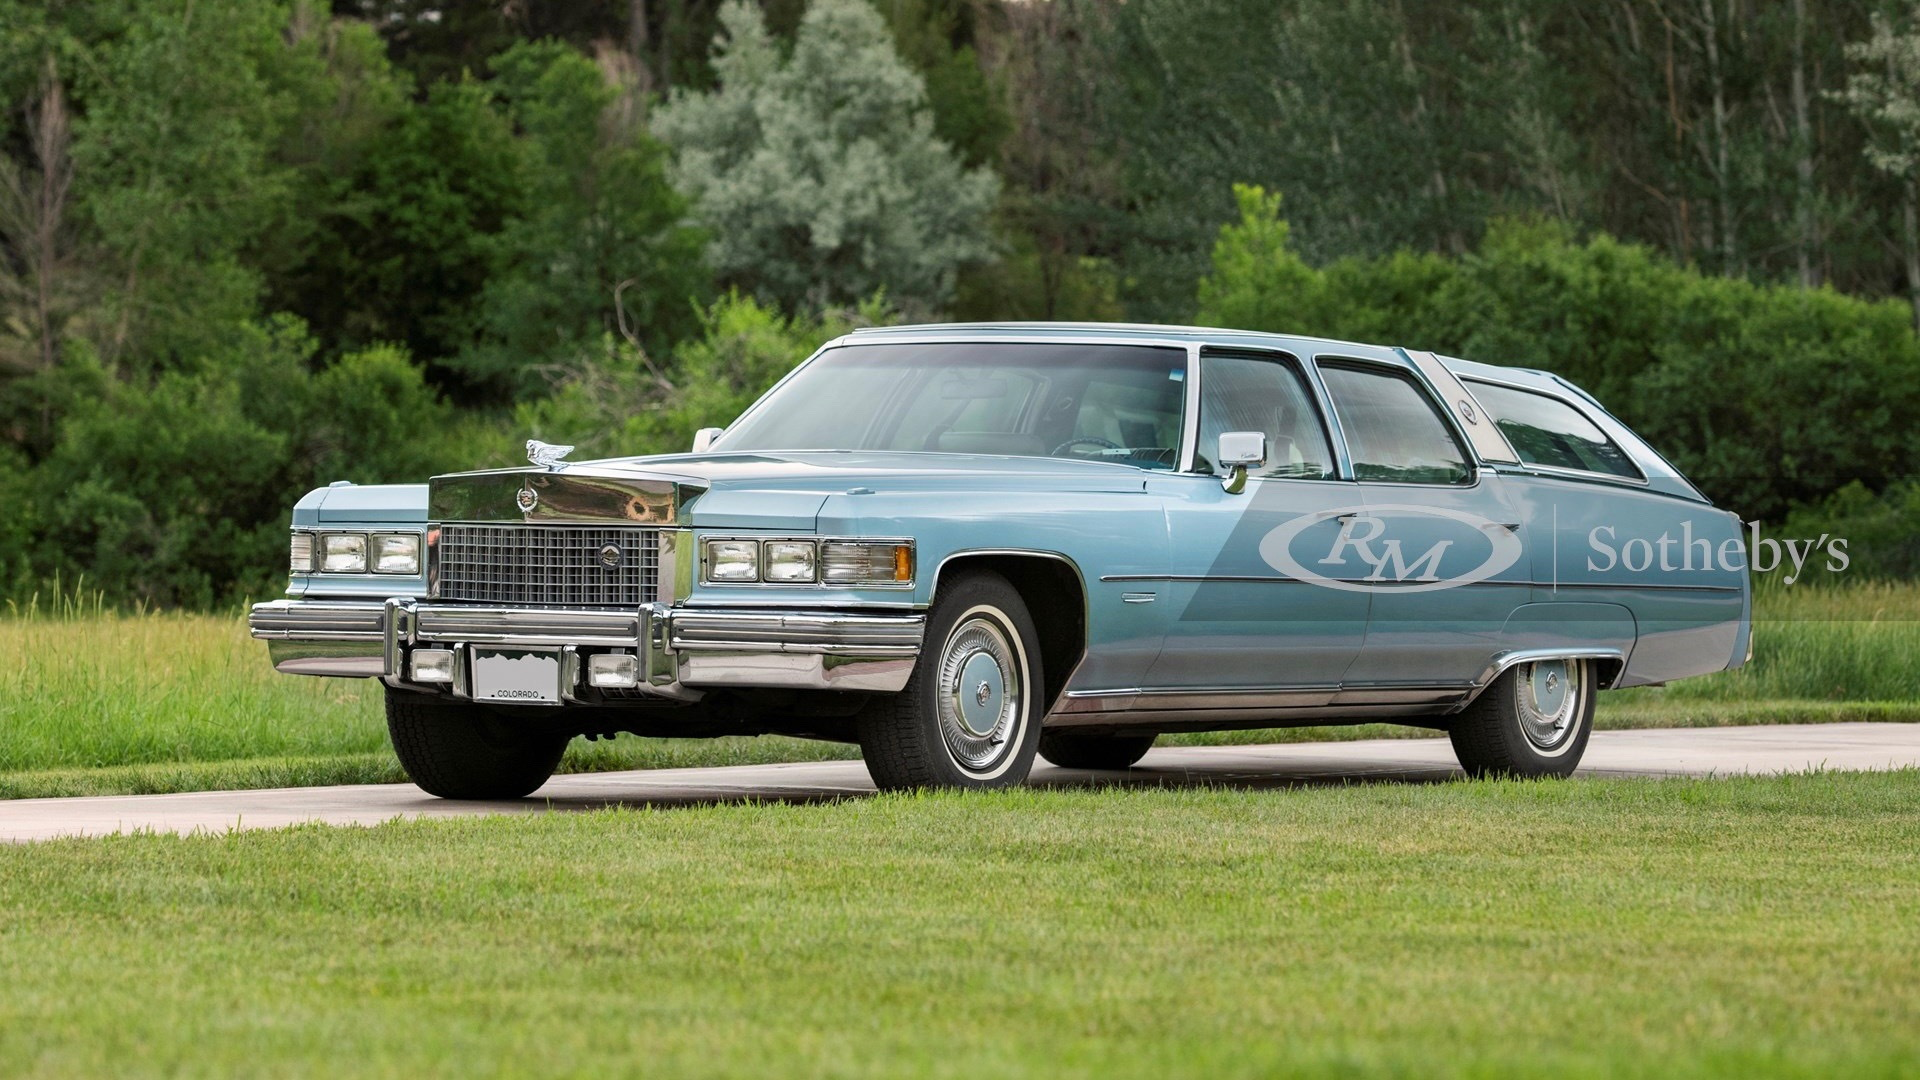 1976 Cadillac Castillian Fleetwood Estate Wagon (photo by RM Sotheby's)